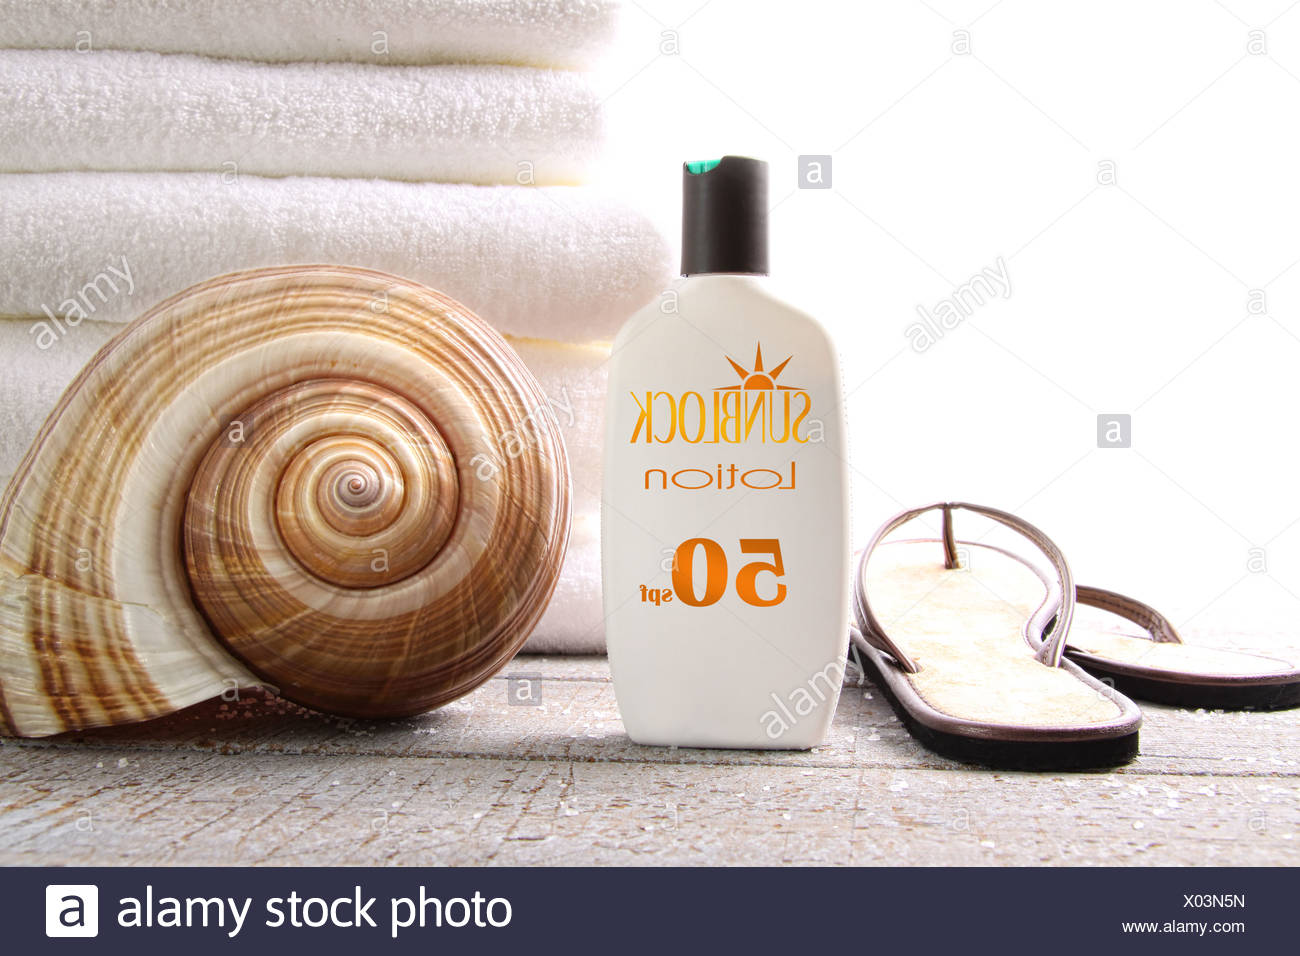 Sunblock lotion, sandals and white towels on white - Stock Image